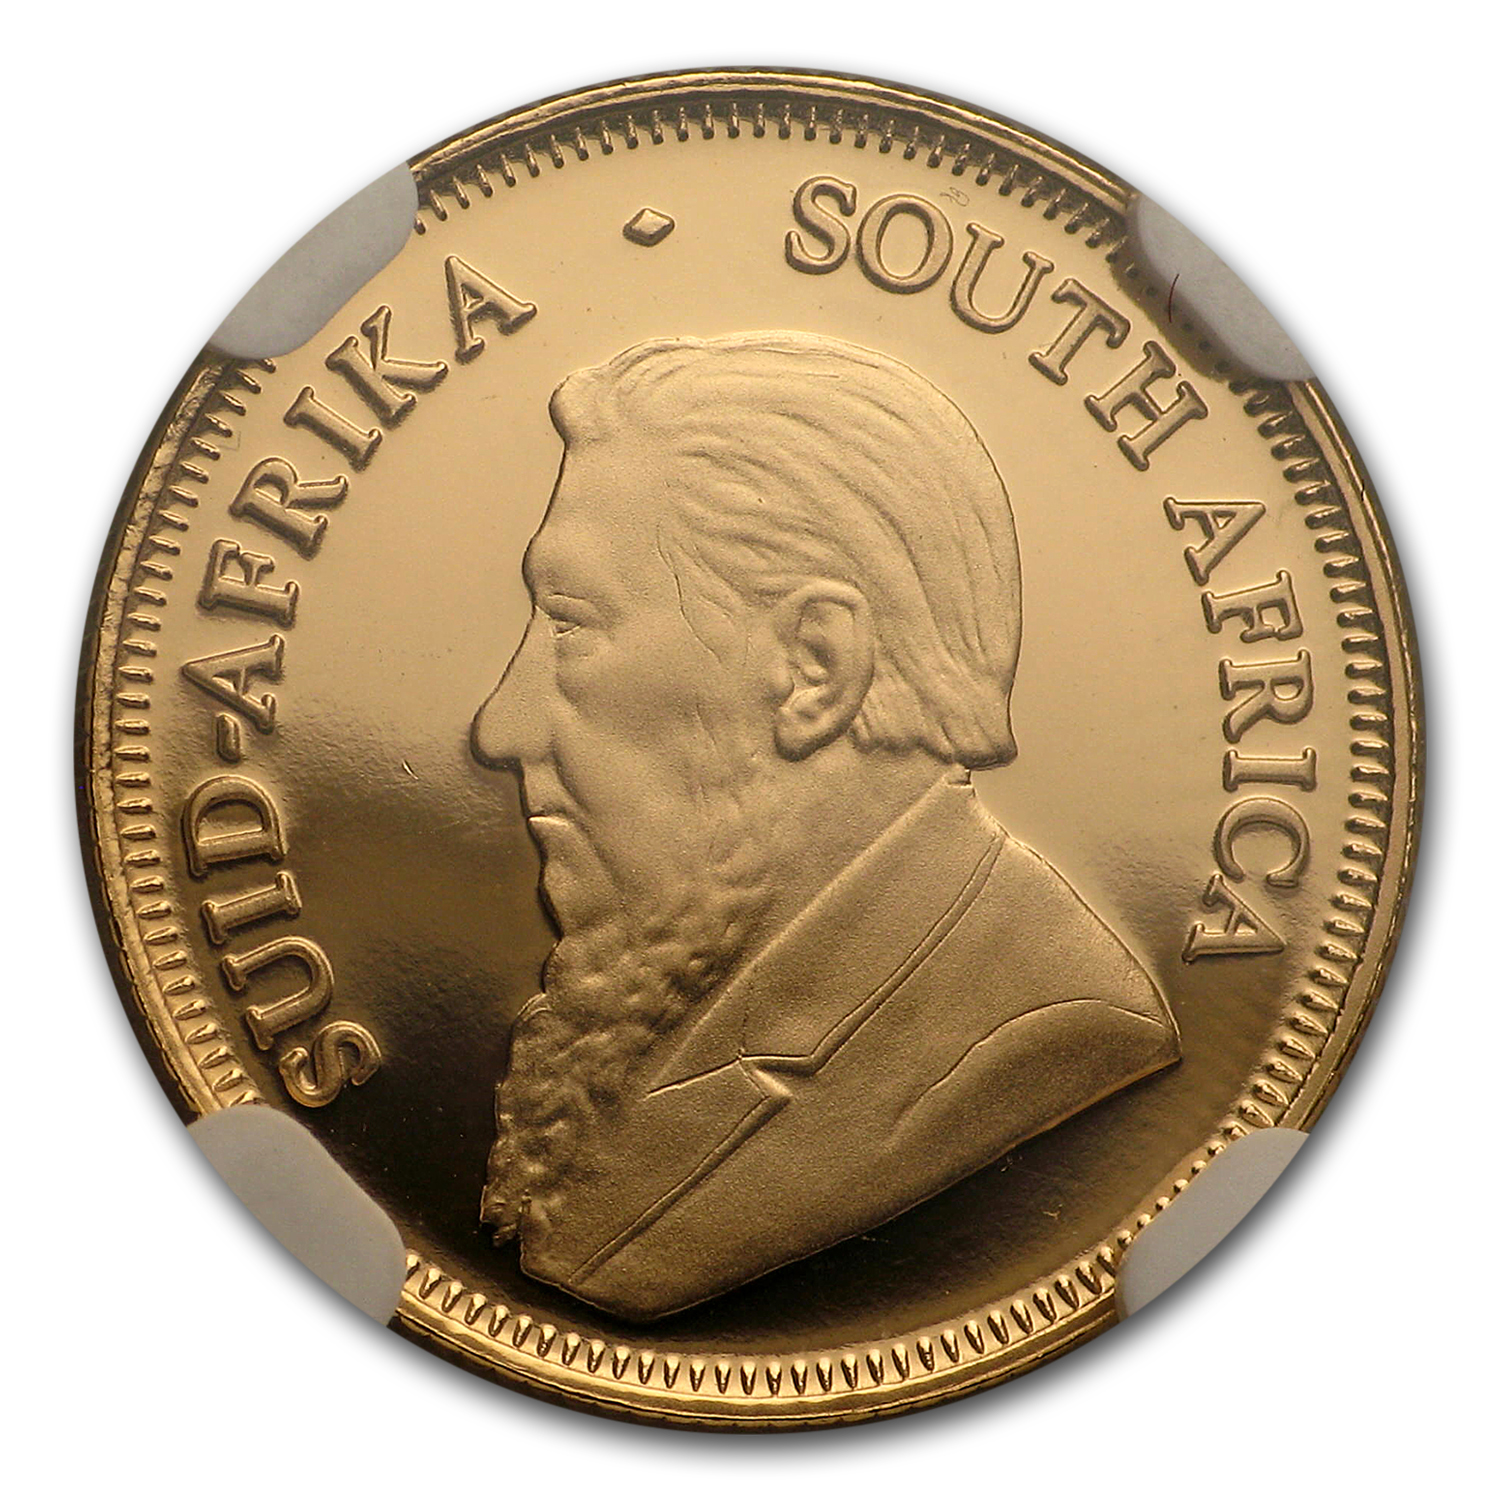 2015 South Africa 1/10 oz Proof Gold Krugerrand PF-69 NGC